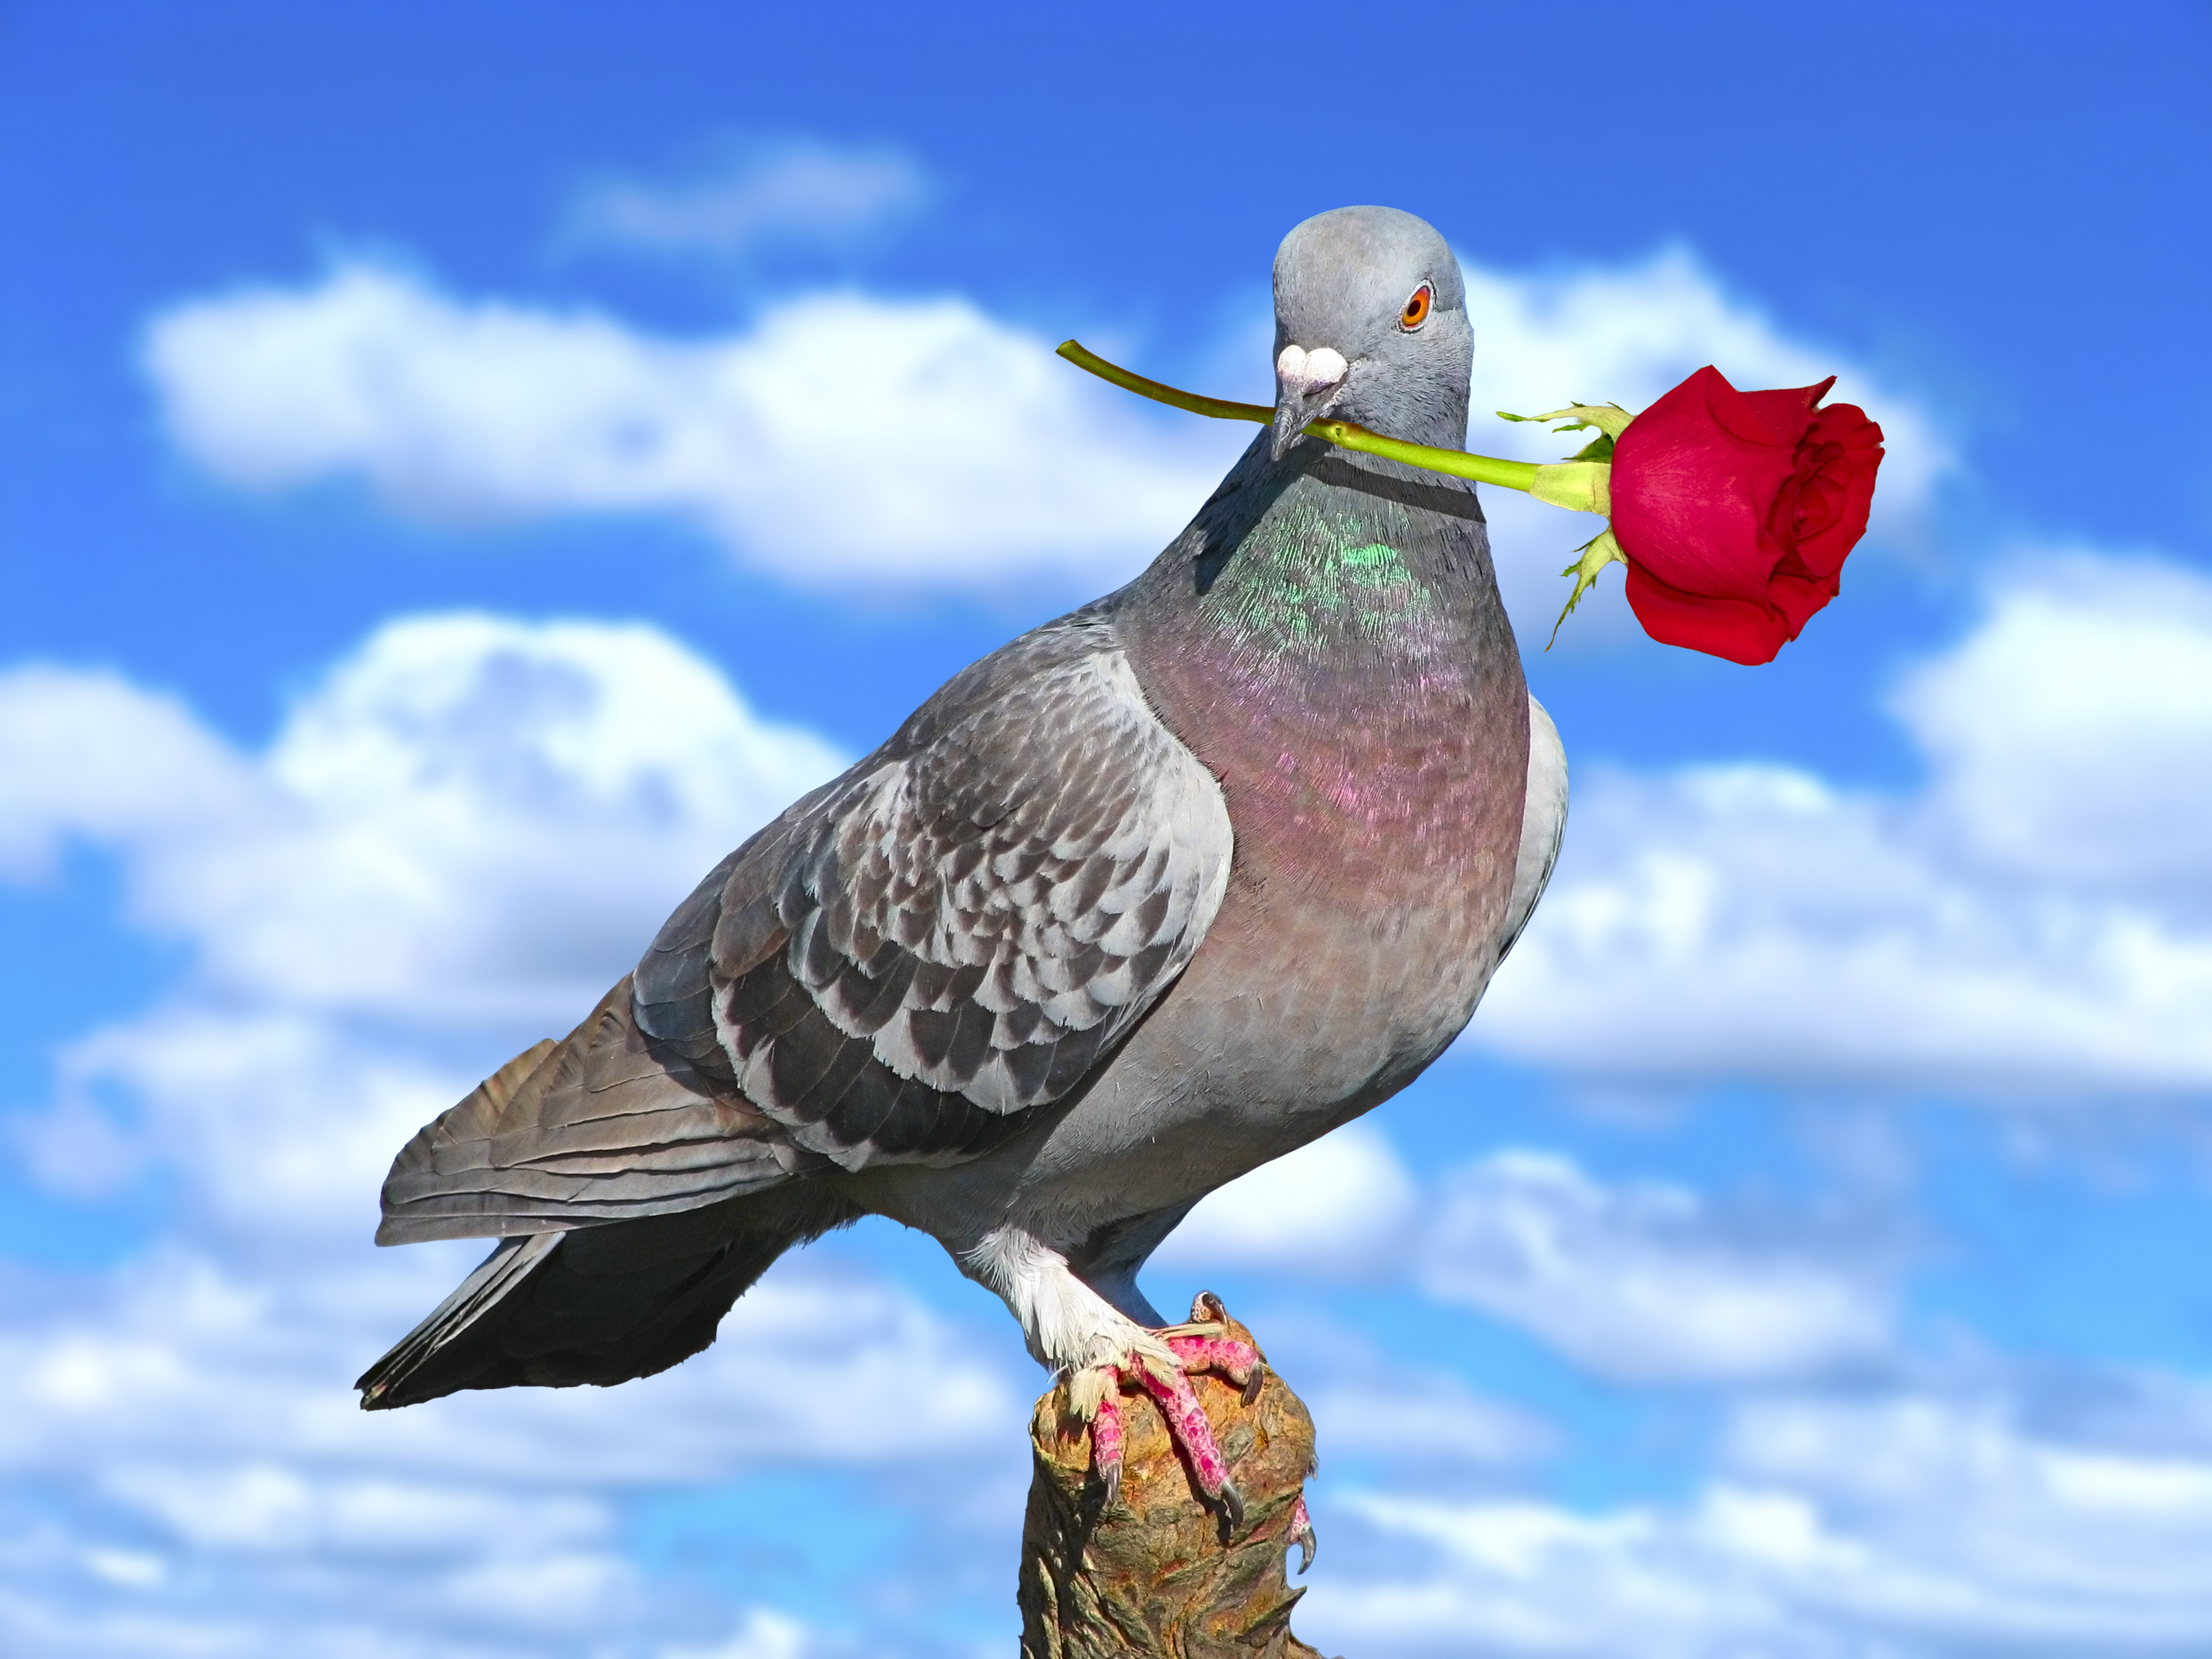 pigeon-with-rose